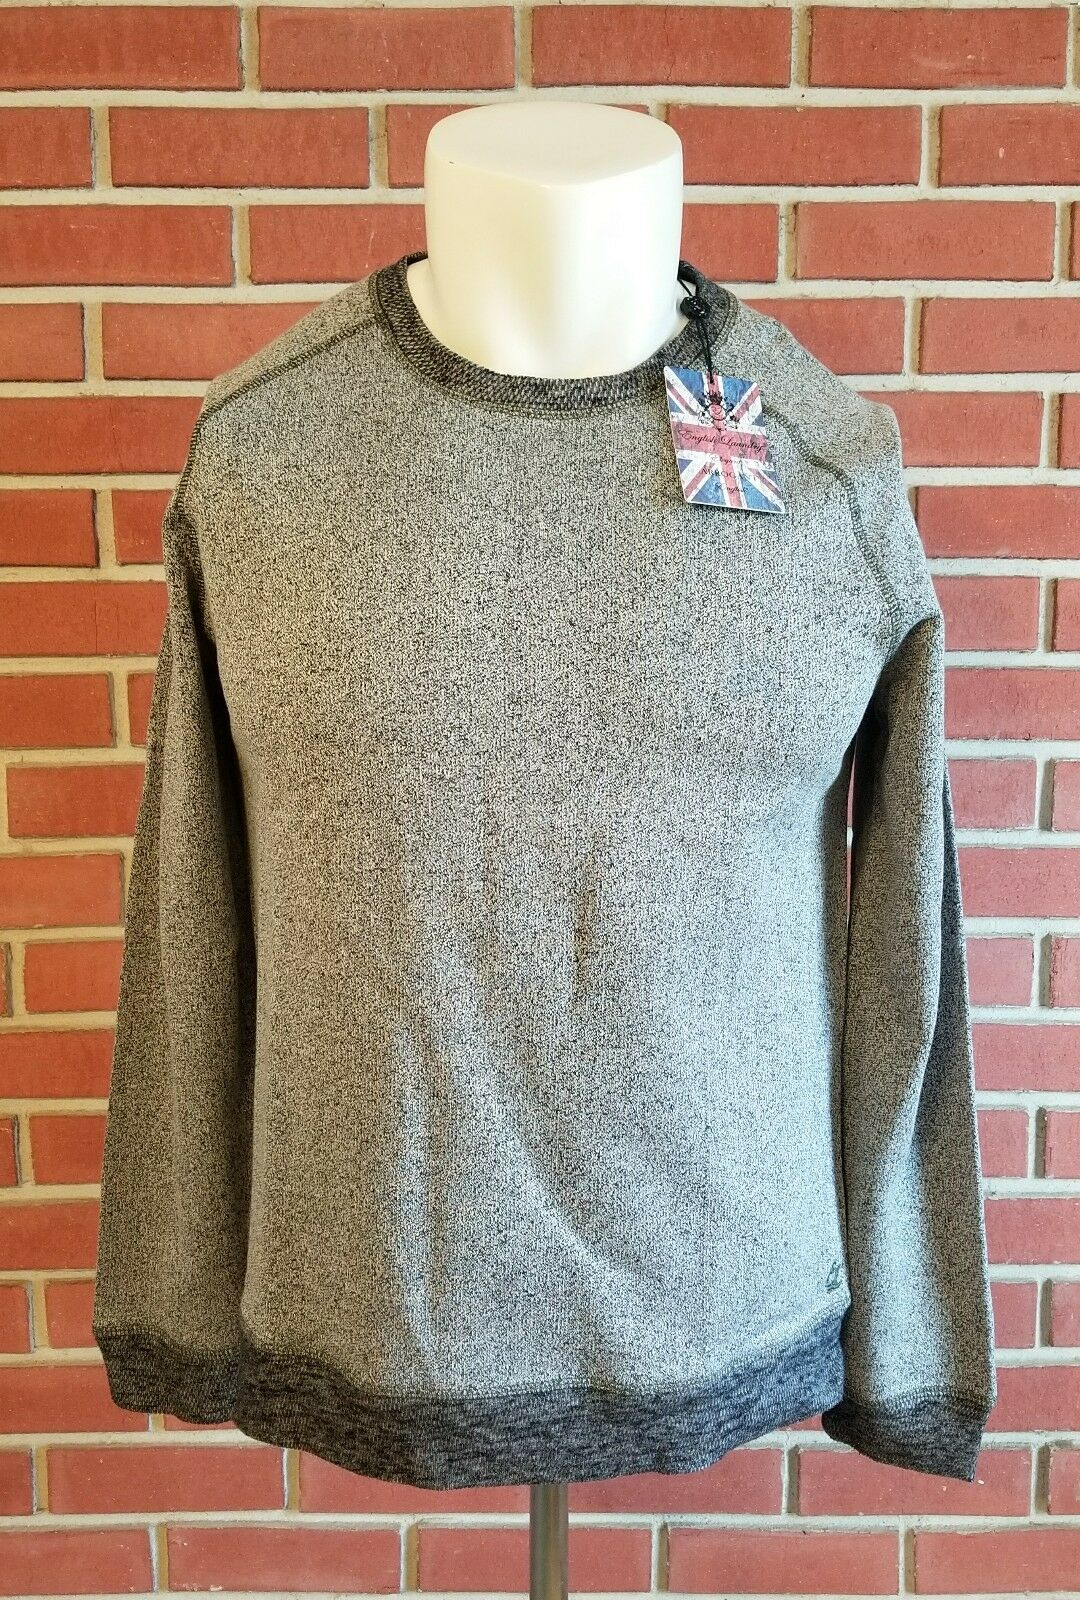 NWT English Laundry Long Sleeve Crewnect Sweatshirt grau  Herren Large Cotton Blend